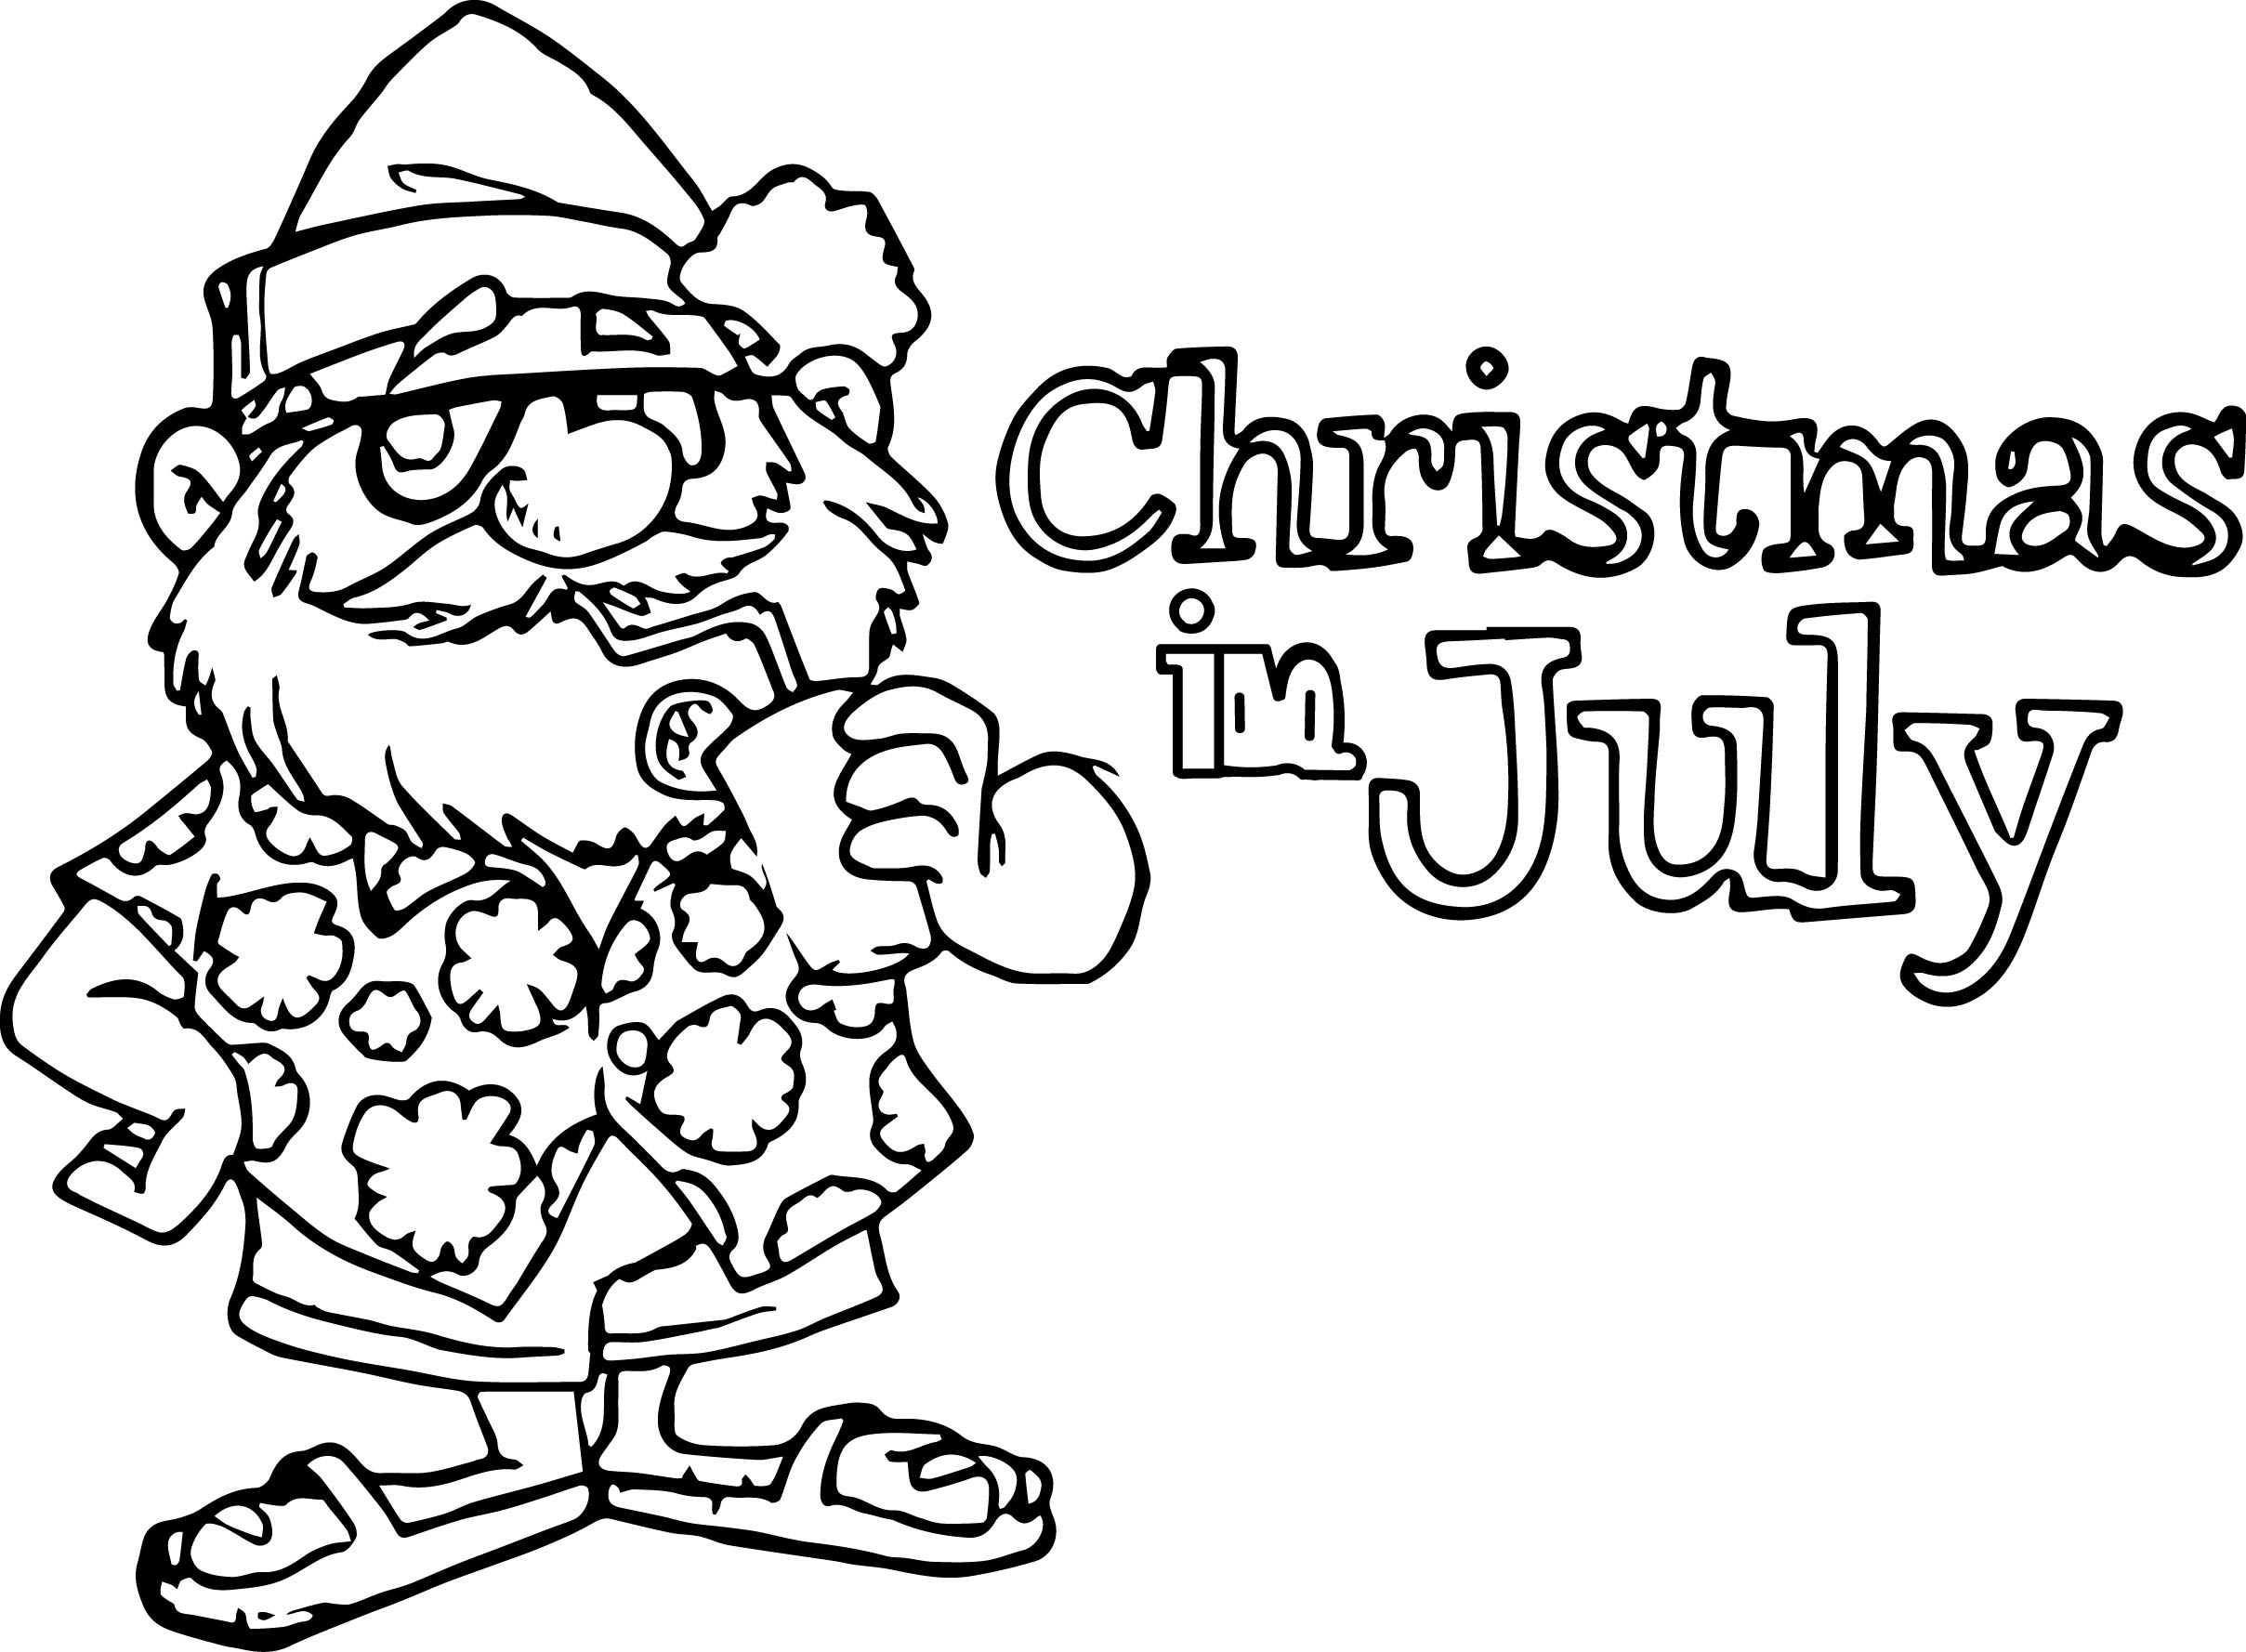 4th of july coloring pages - 4th july christmas july coloring page